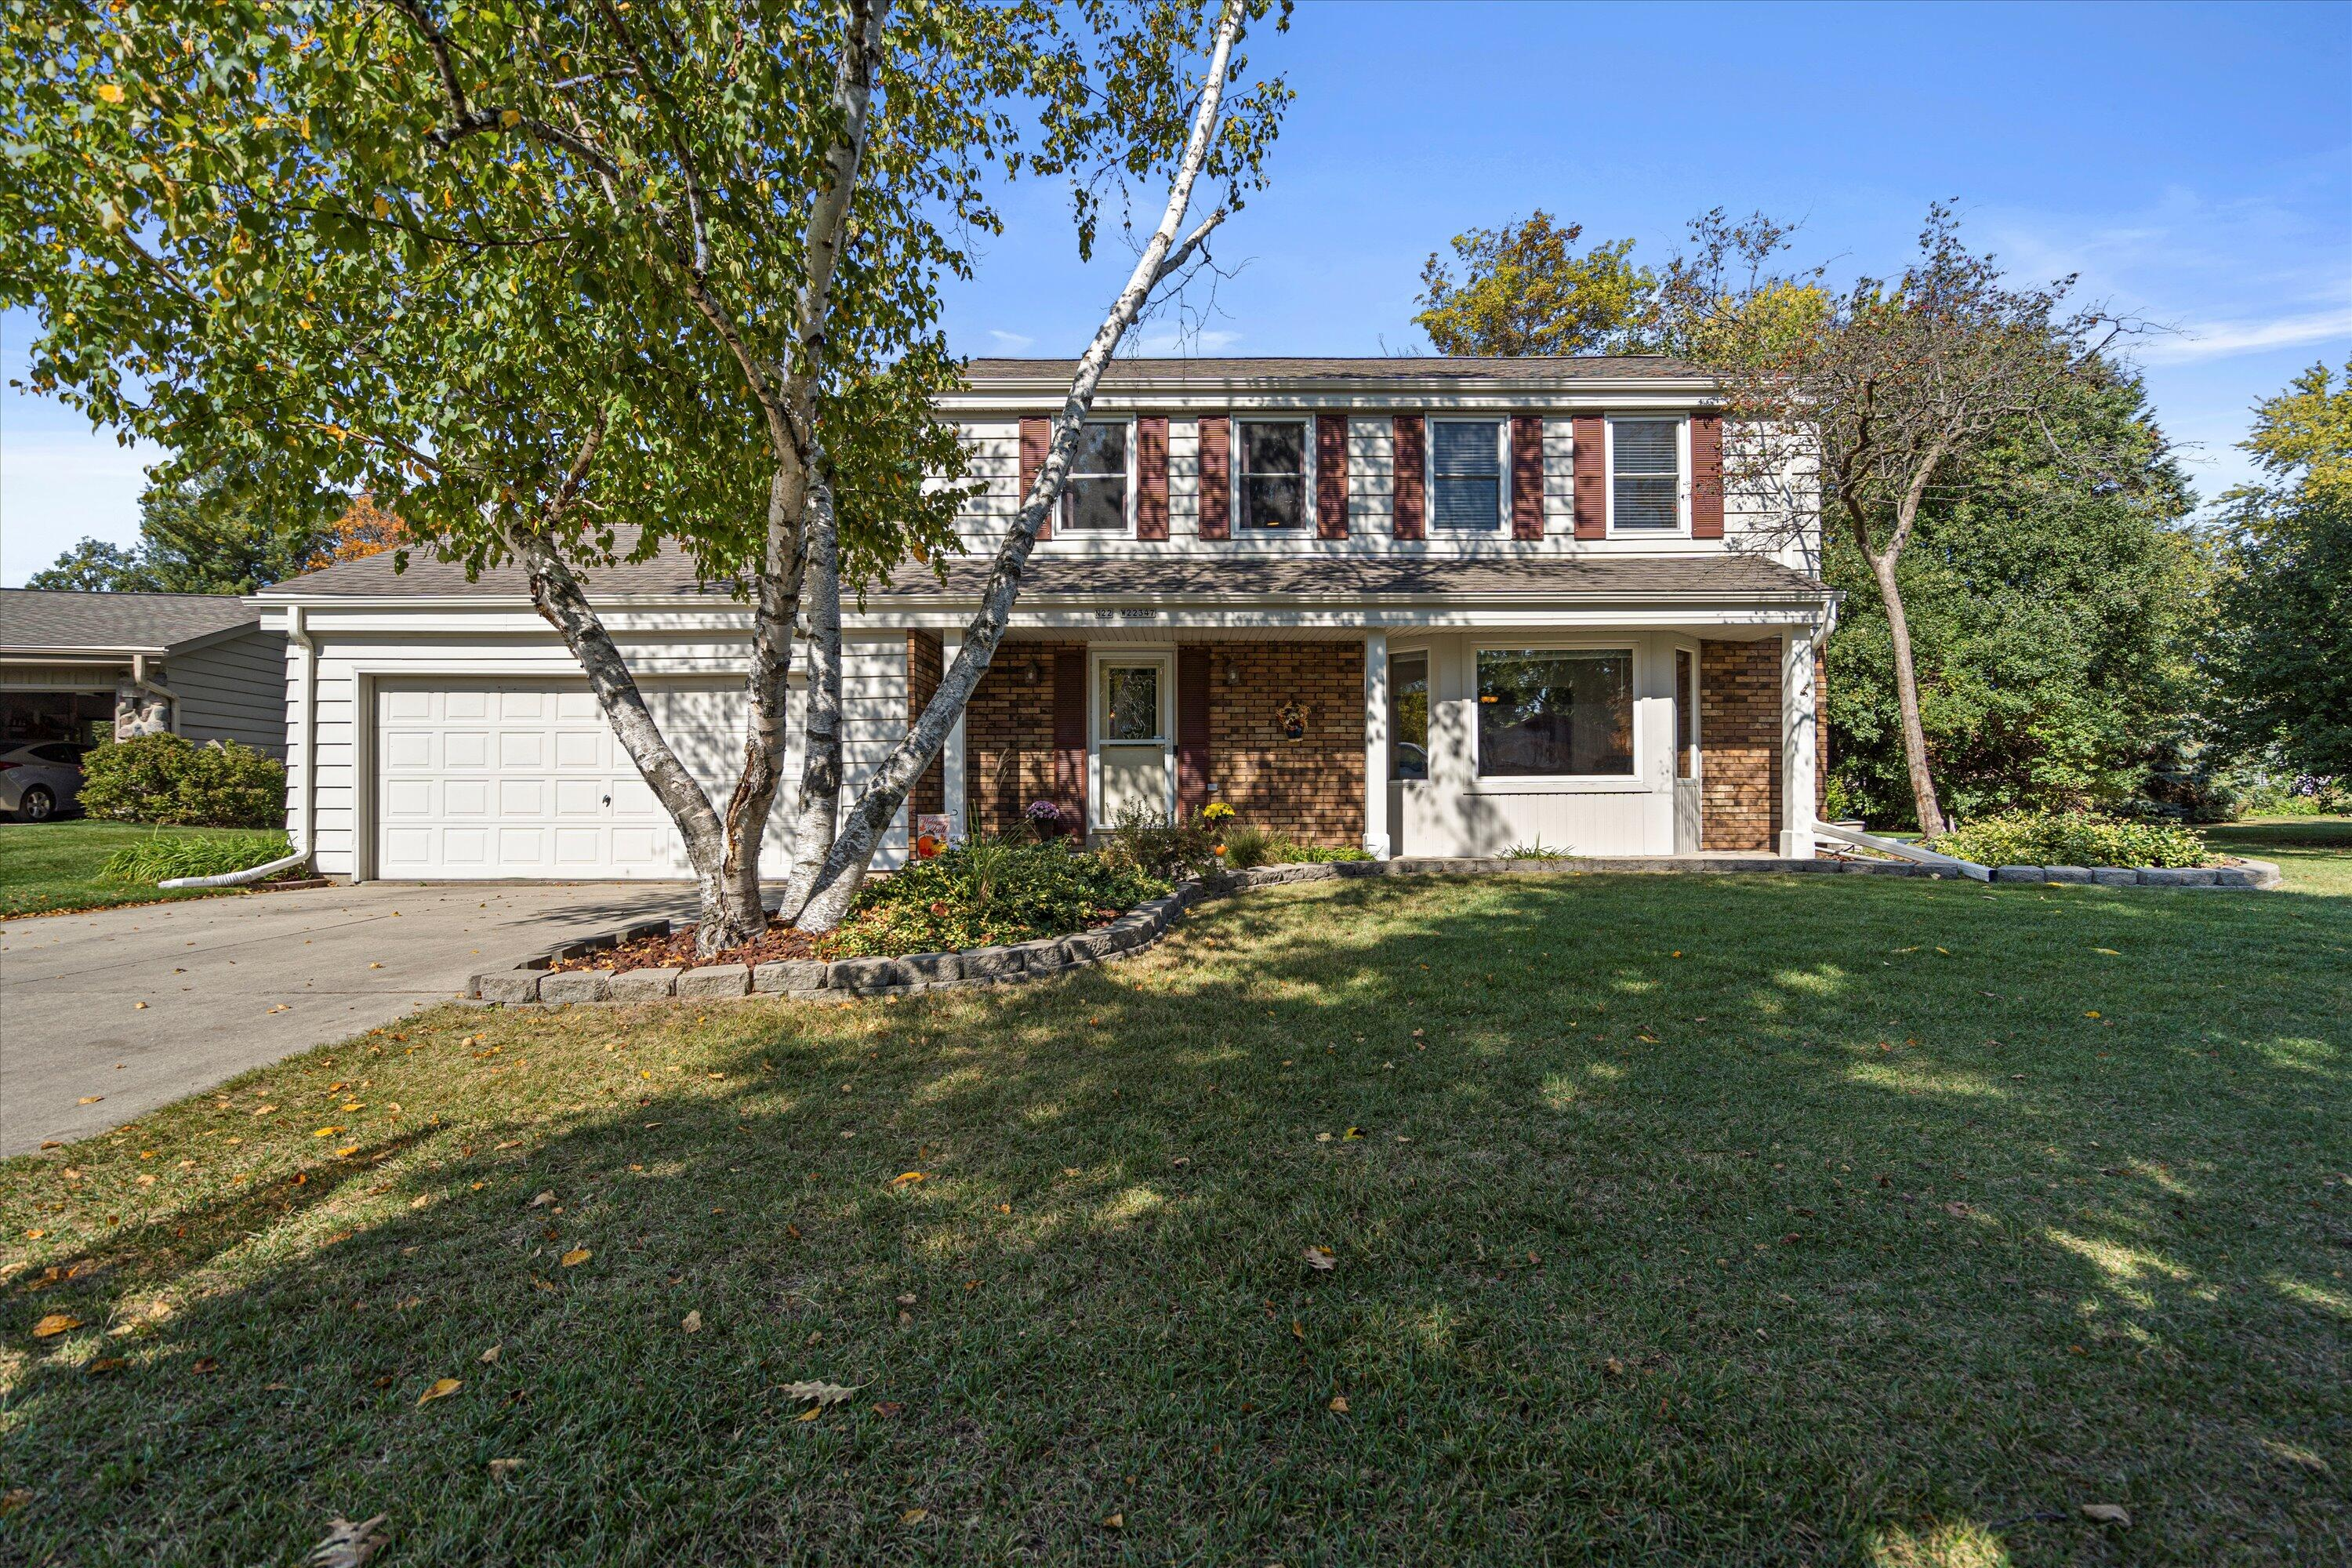 N22W22347 Rosewood Ct, Pewaukee, Wisconsin 53186, 4 Bedrooms Bedrooms, 9 Rooms Rooms,3 BathroomsBathrooms,Single-Family,For Sale,Rosewood Ct,1767164